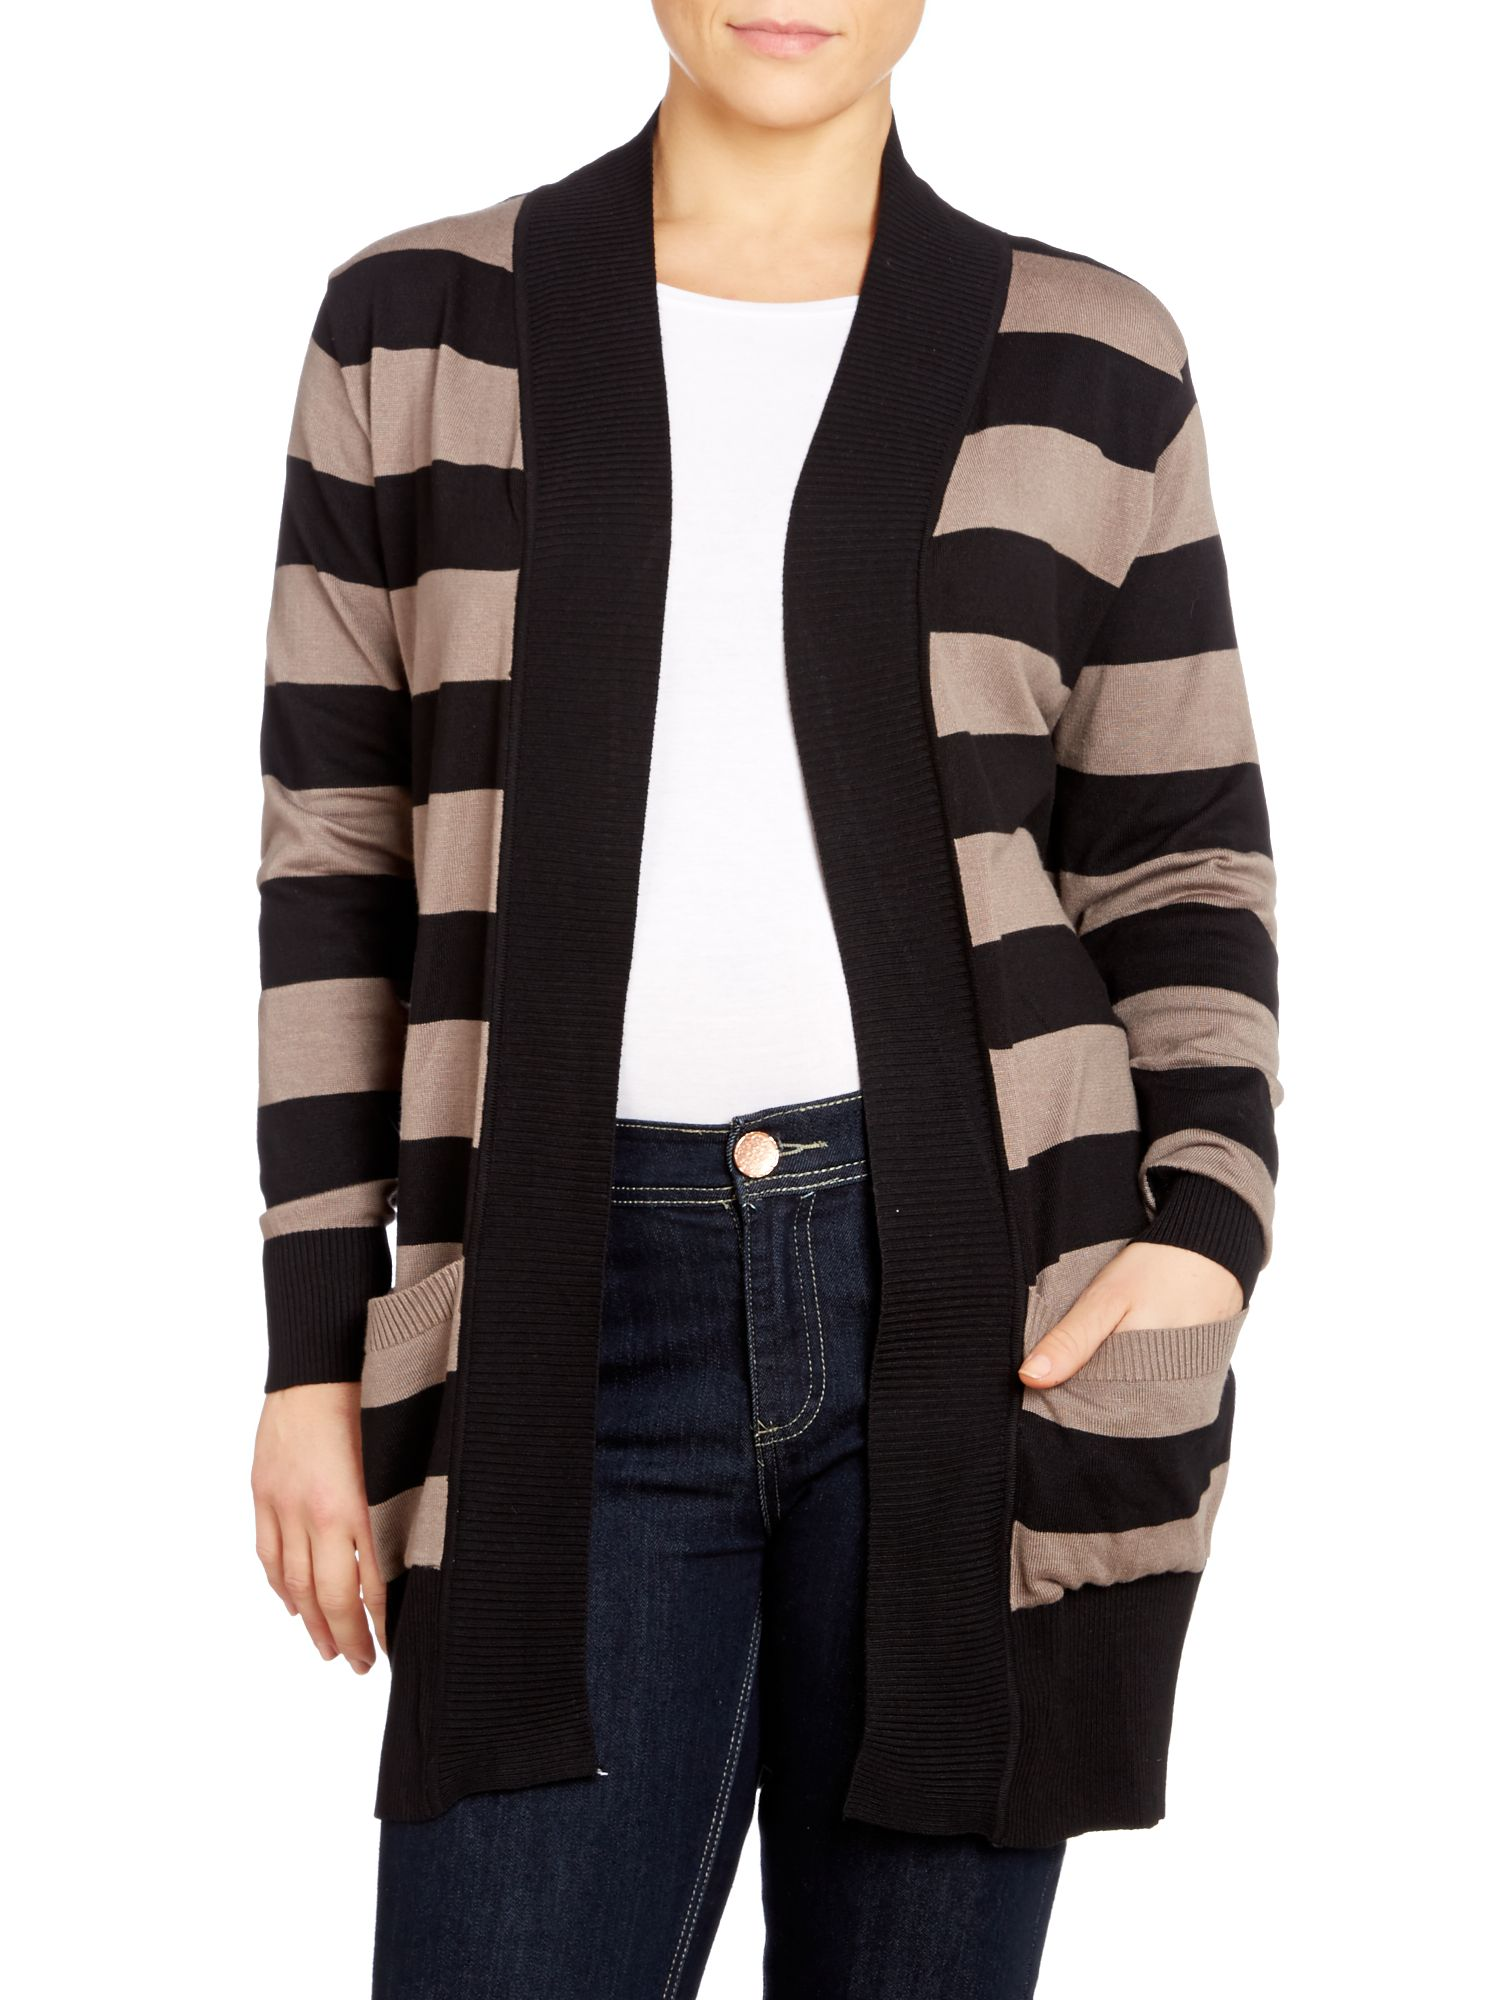 Stripe cardigan with pockets